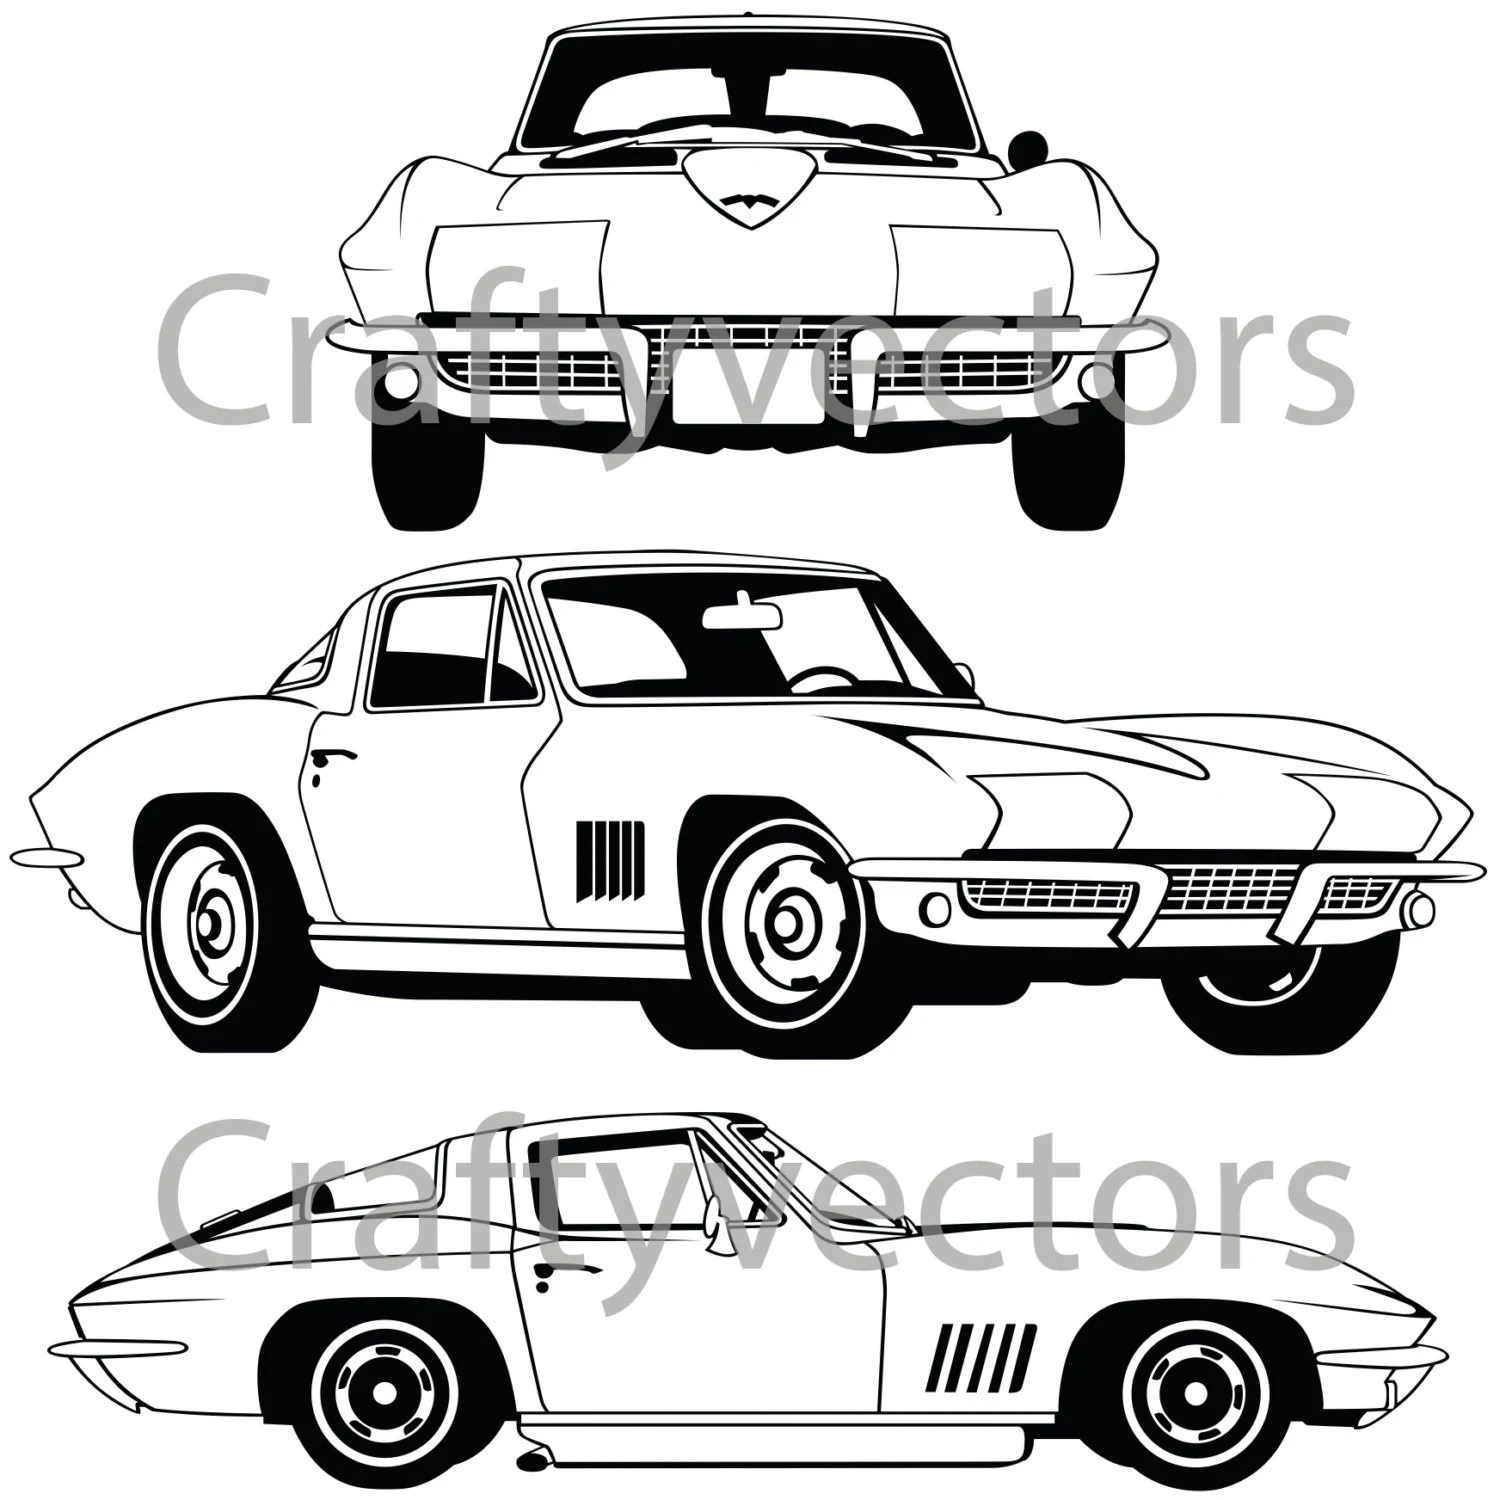 1966 Corvette Car vector file